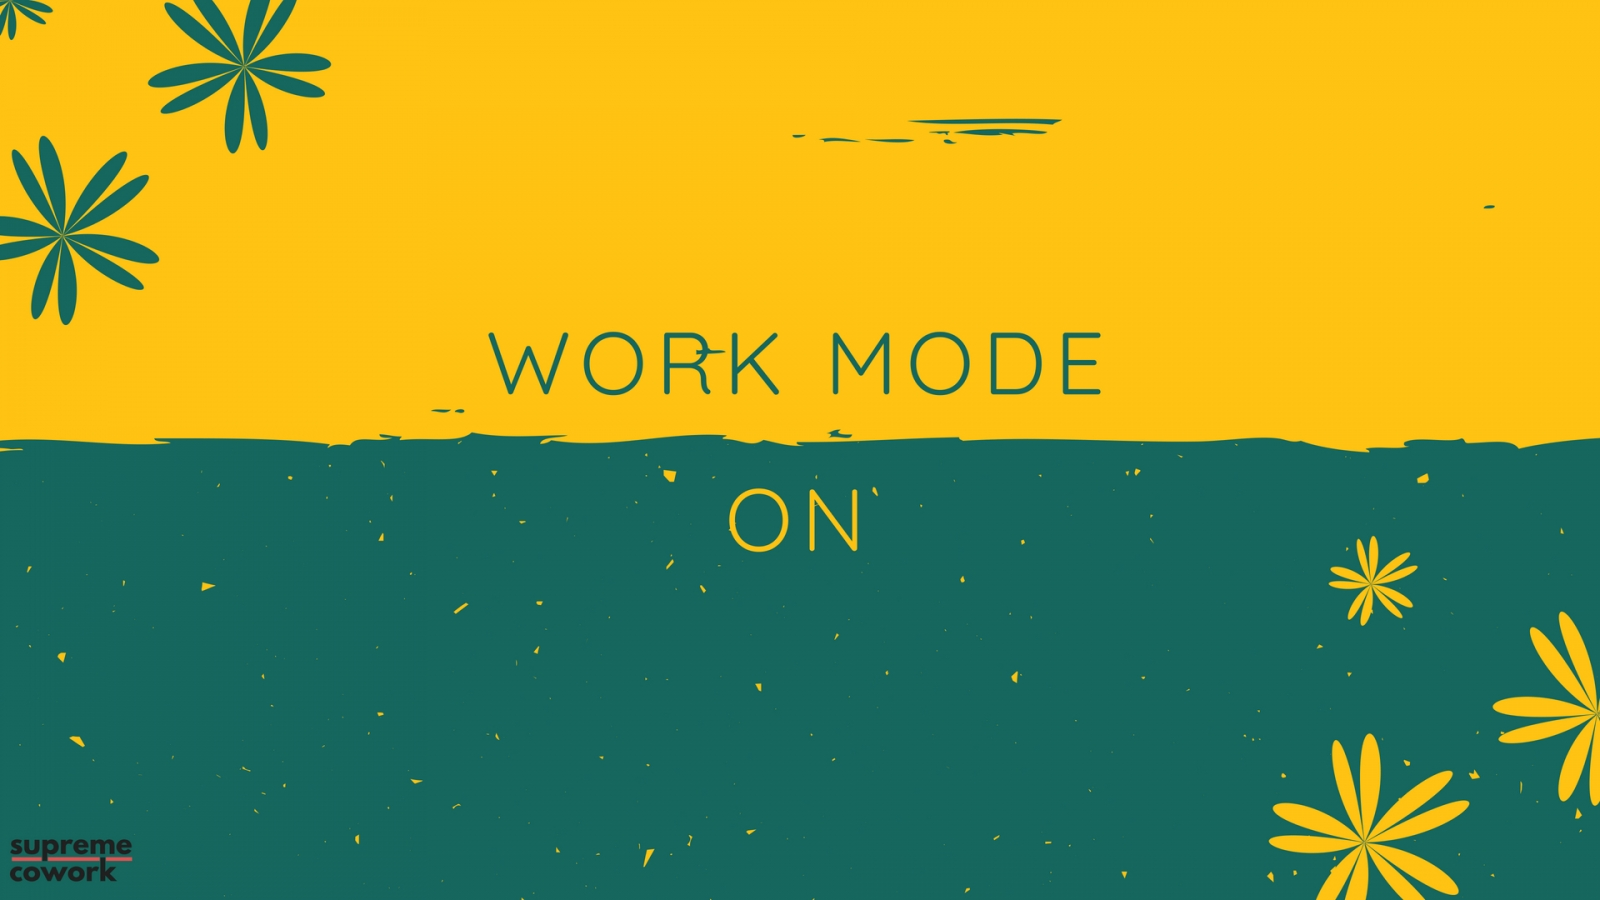 Work Mode On HD Desktop Wallpaper Background download 1600x900